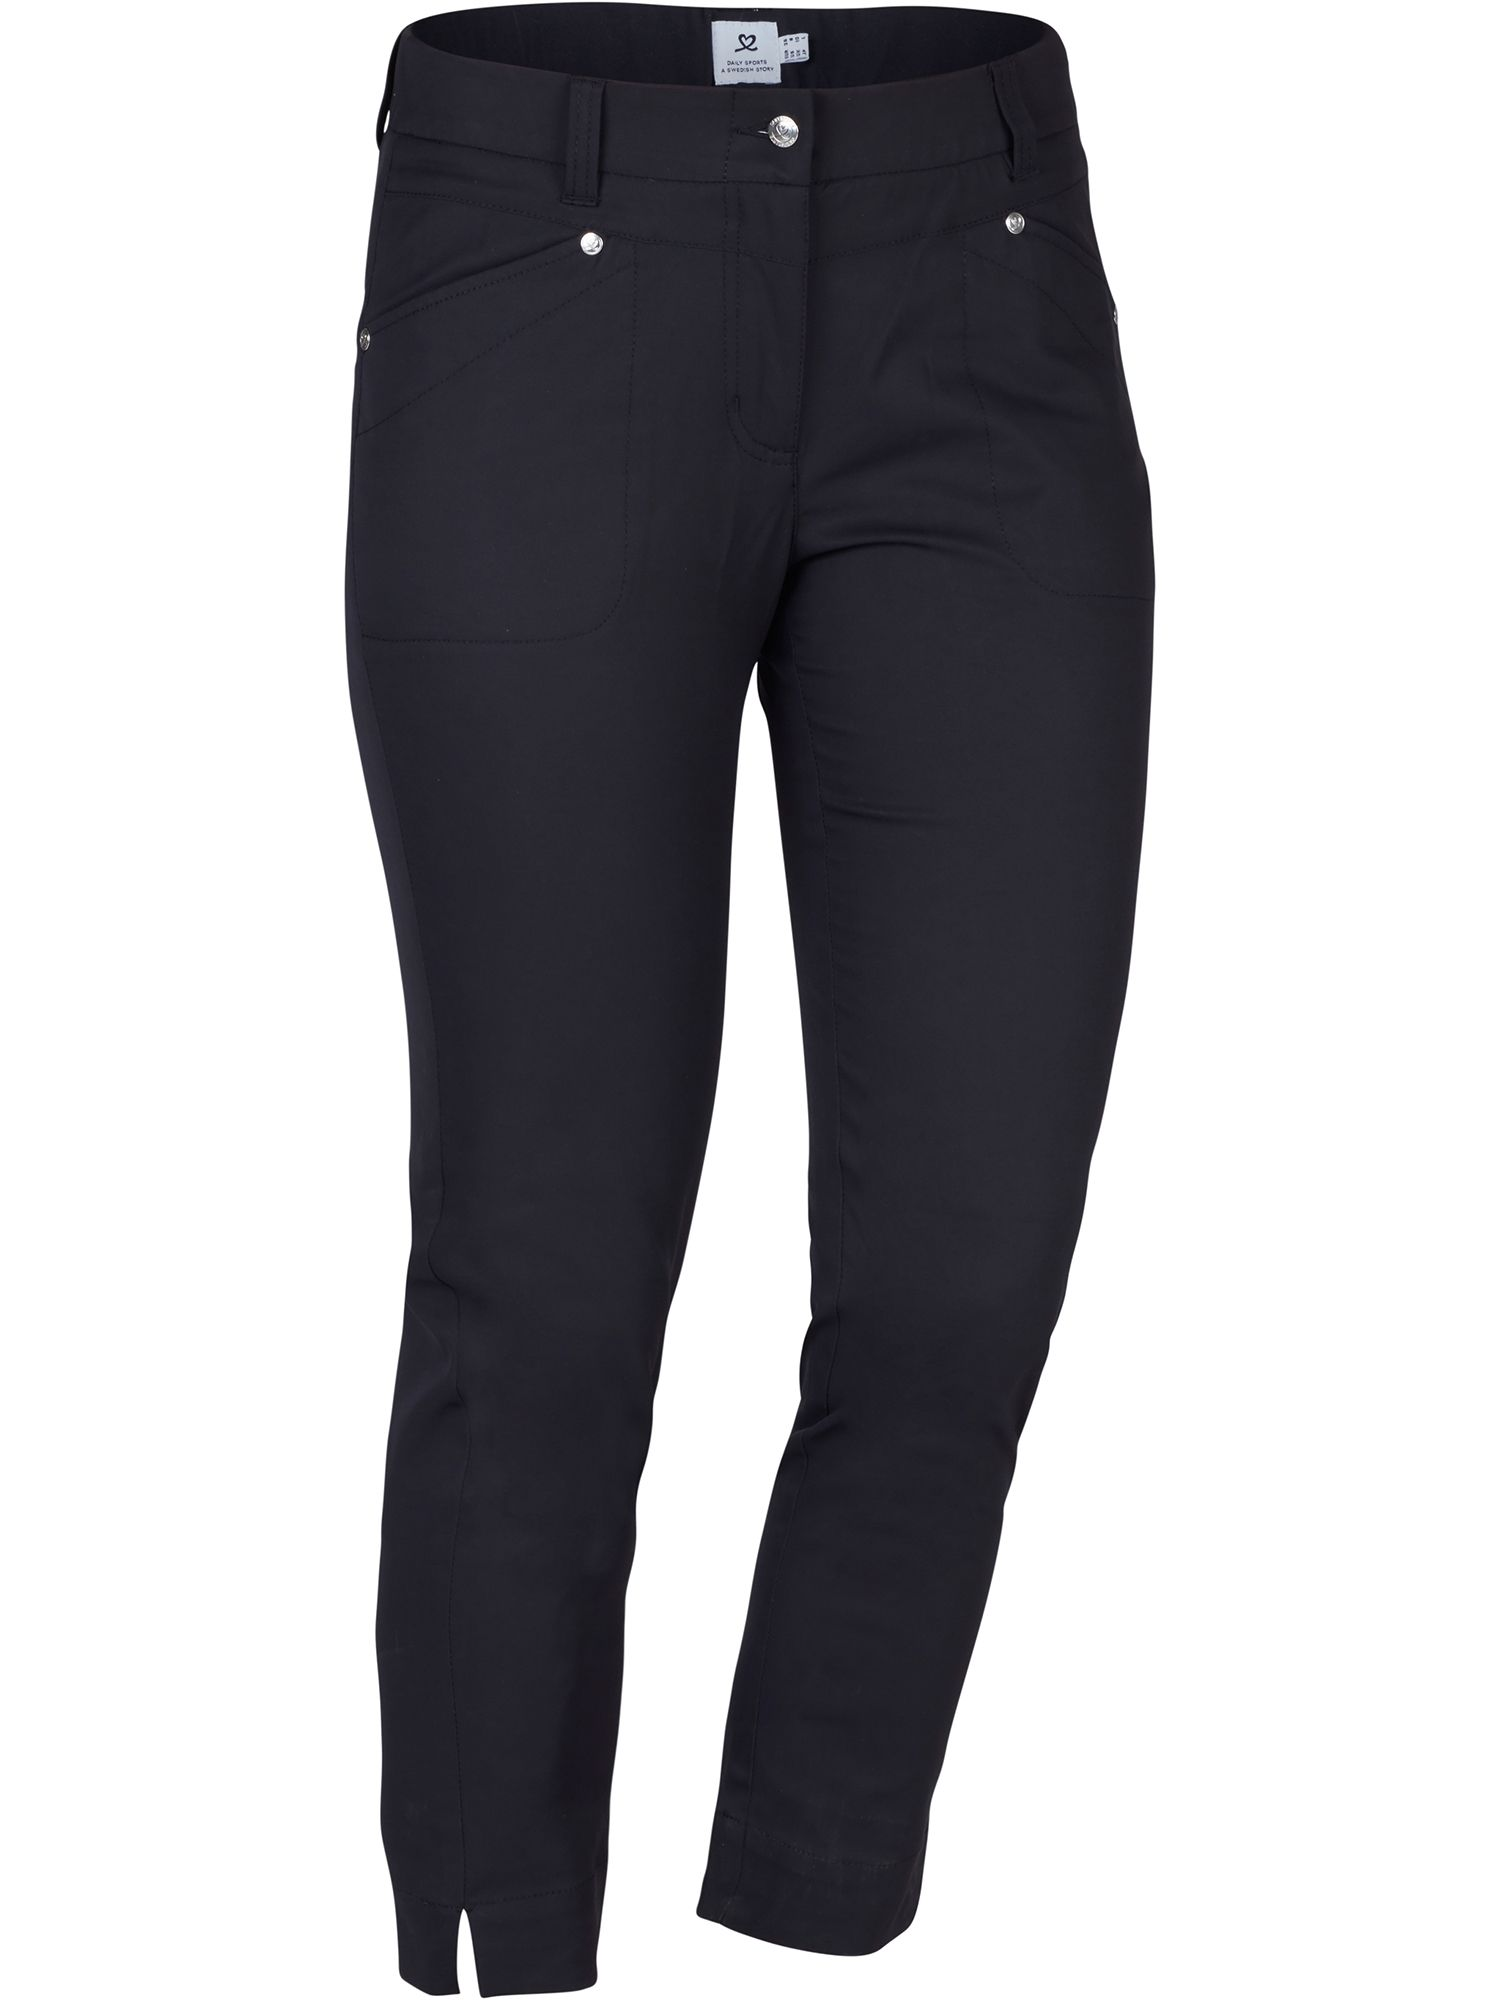 Daily Sports Lyric High Water Trousers, Black